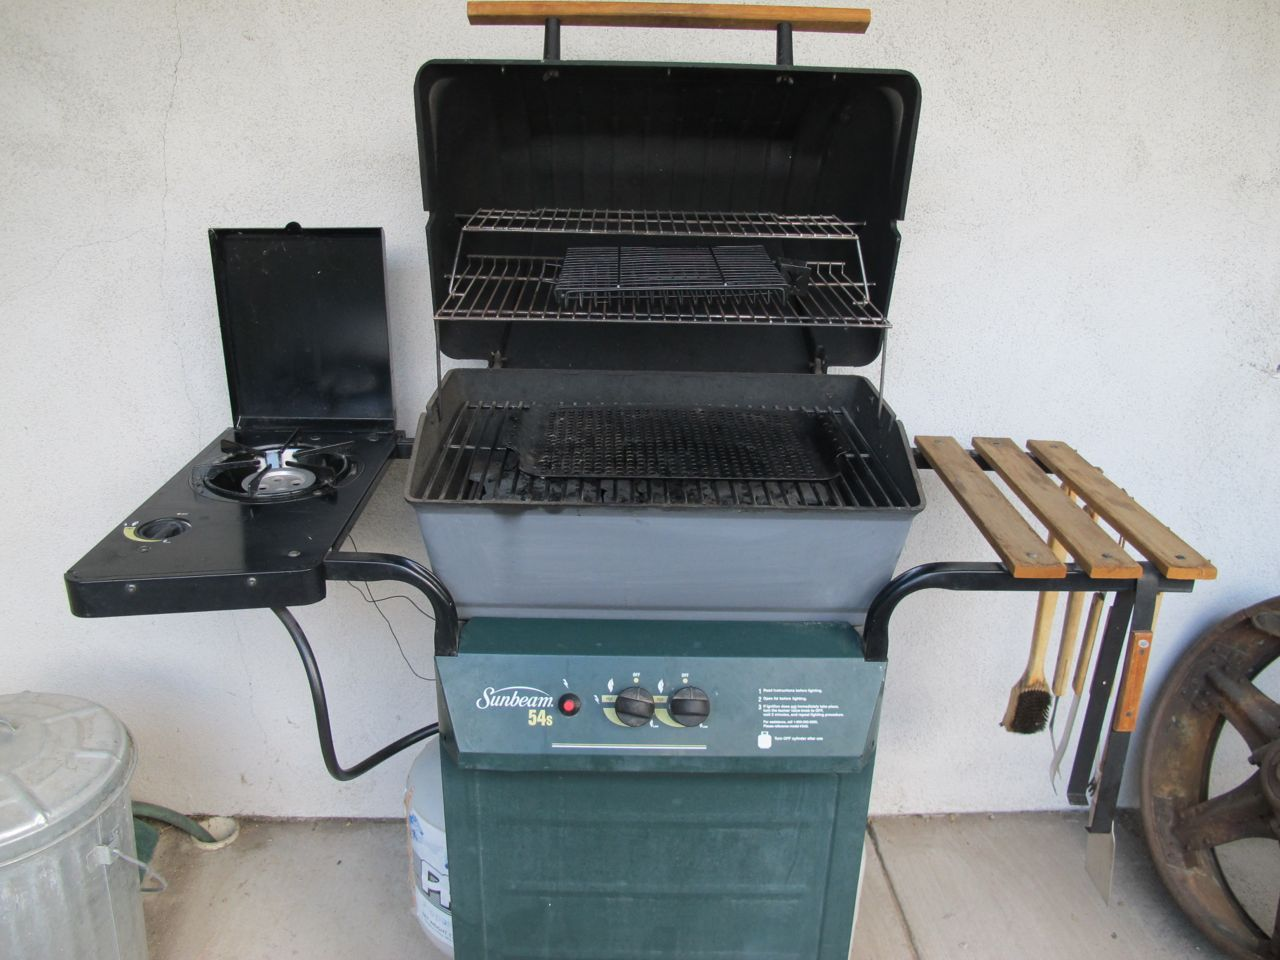 Now that it's clean, the 16-year-old barbecue looks pretty good.